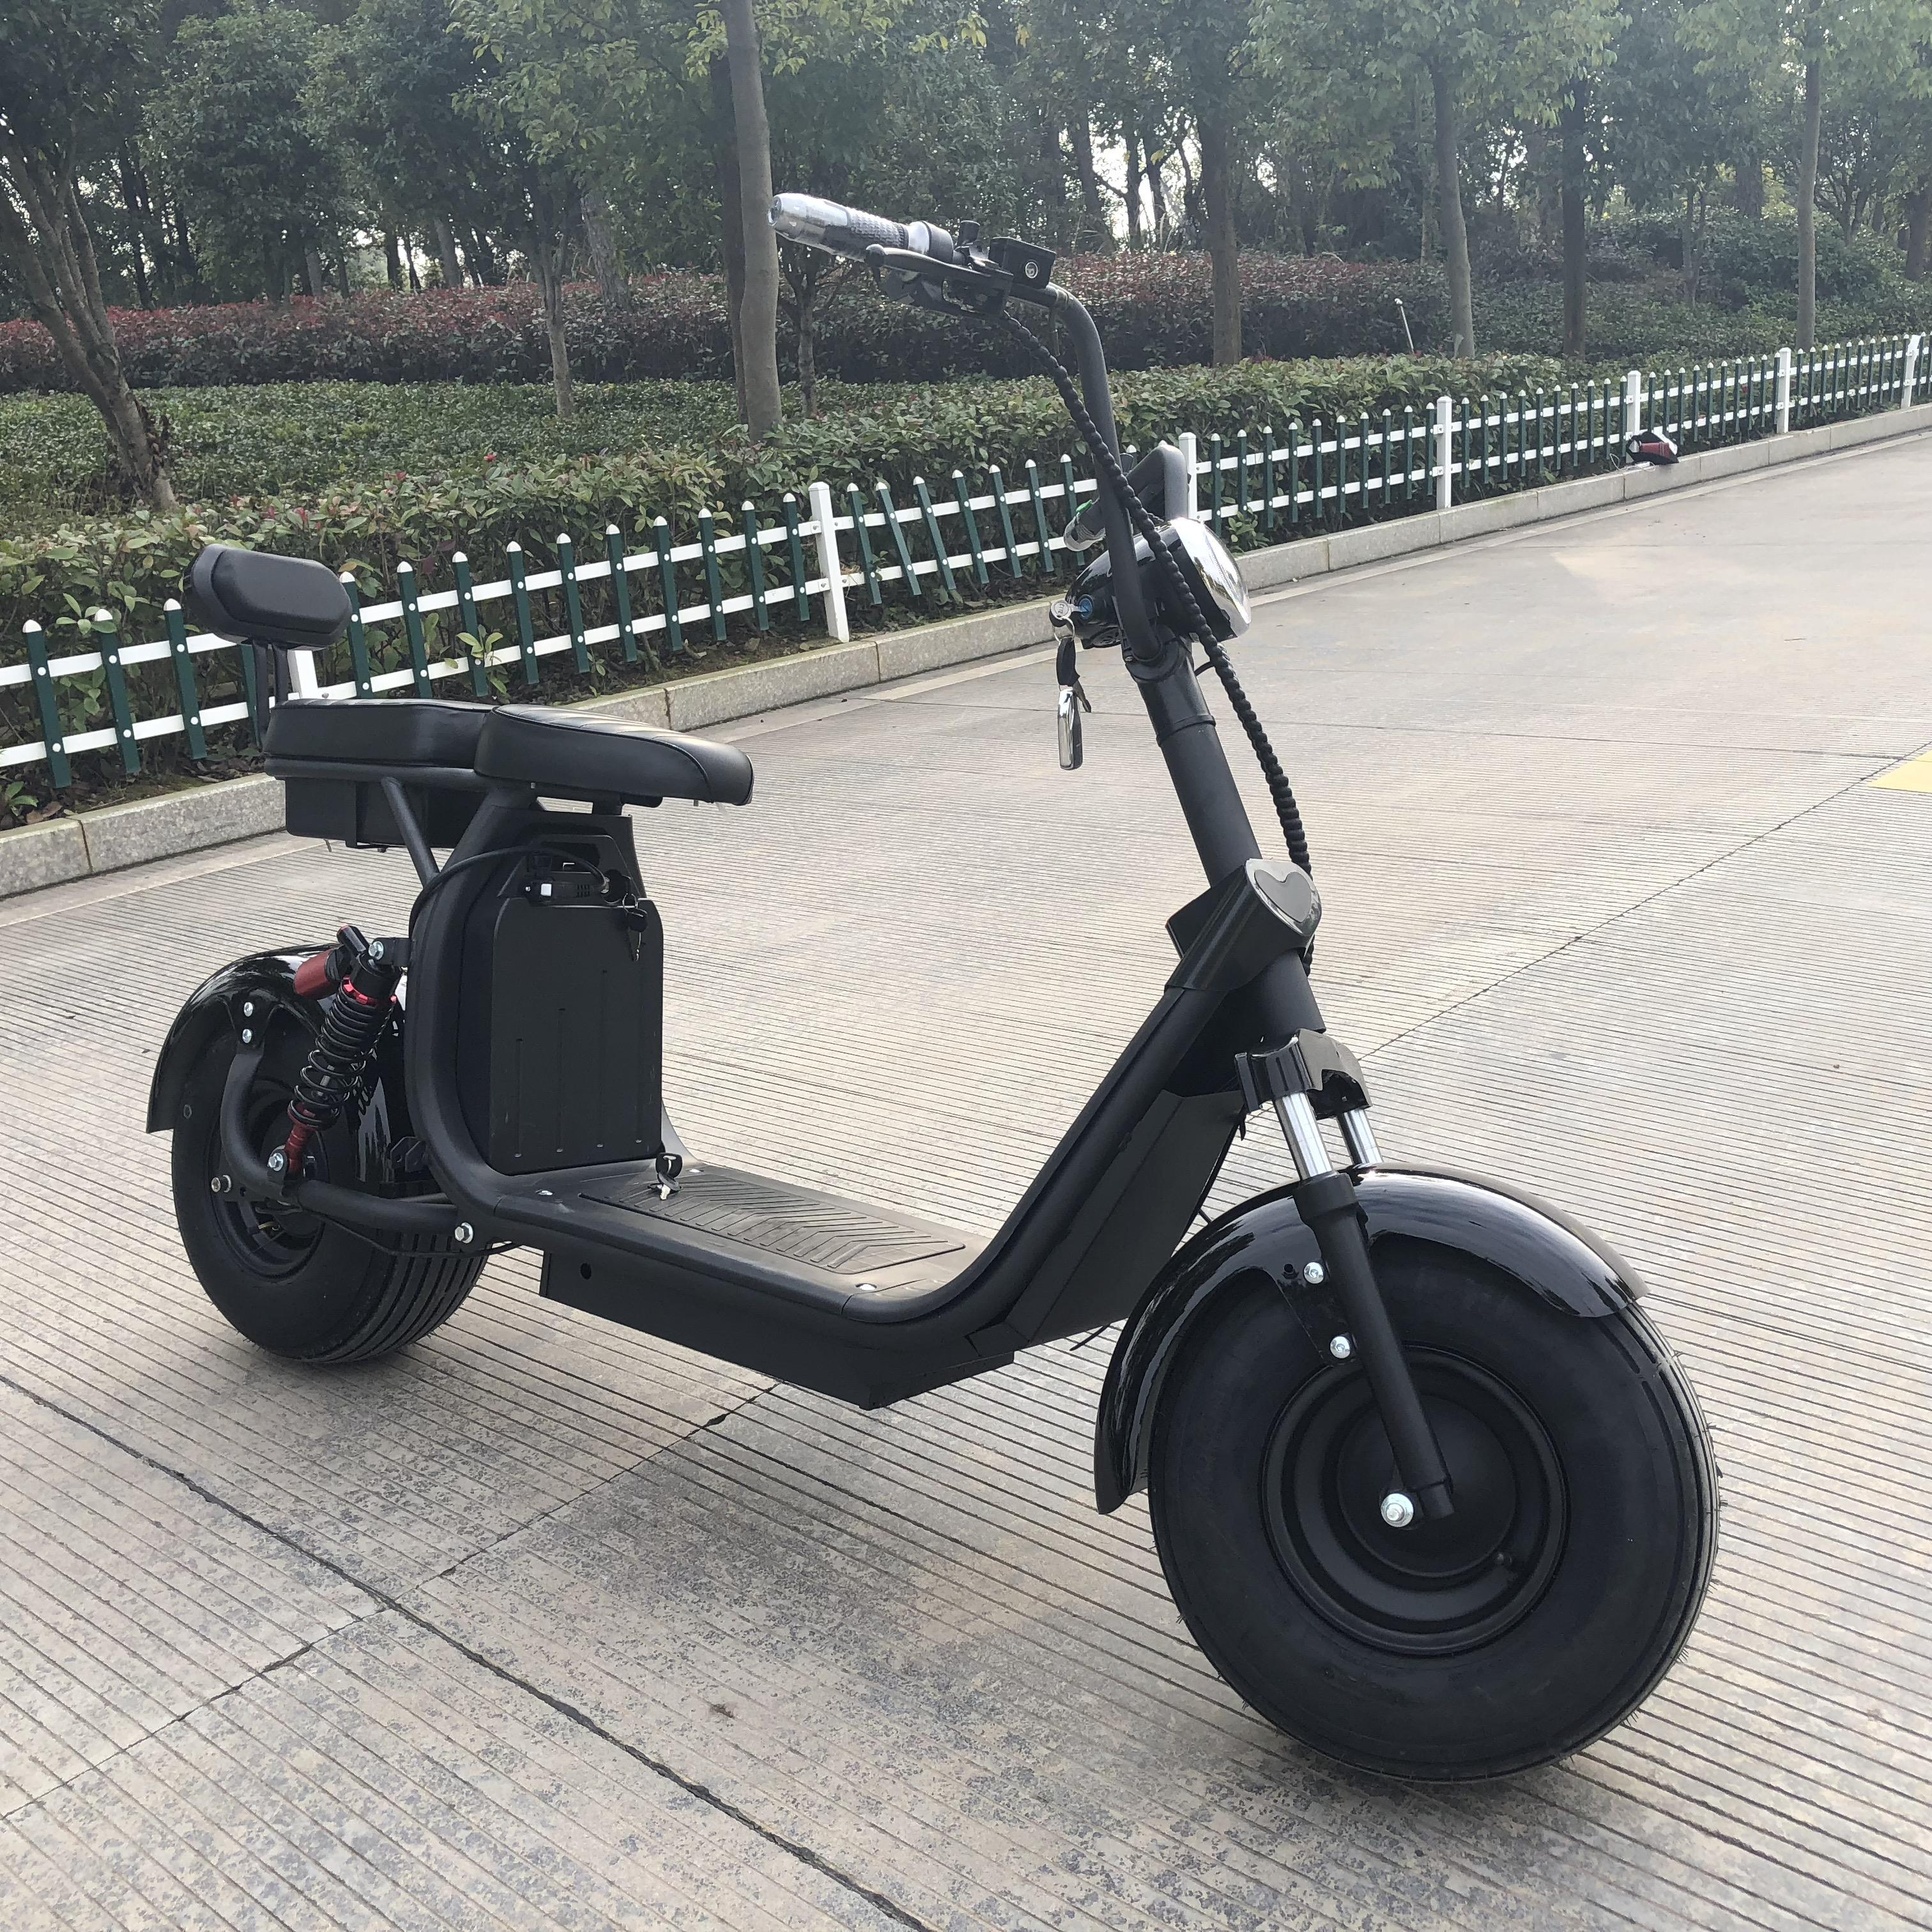 Newest arrival 3200W 60V electric motorcycle with new damping system stand up tricycle electric scooter for adults